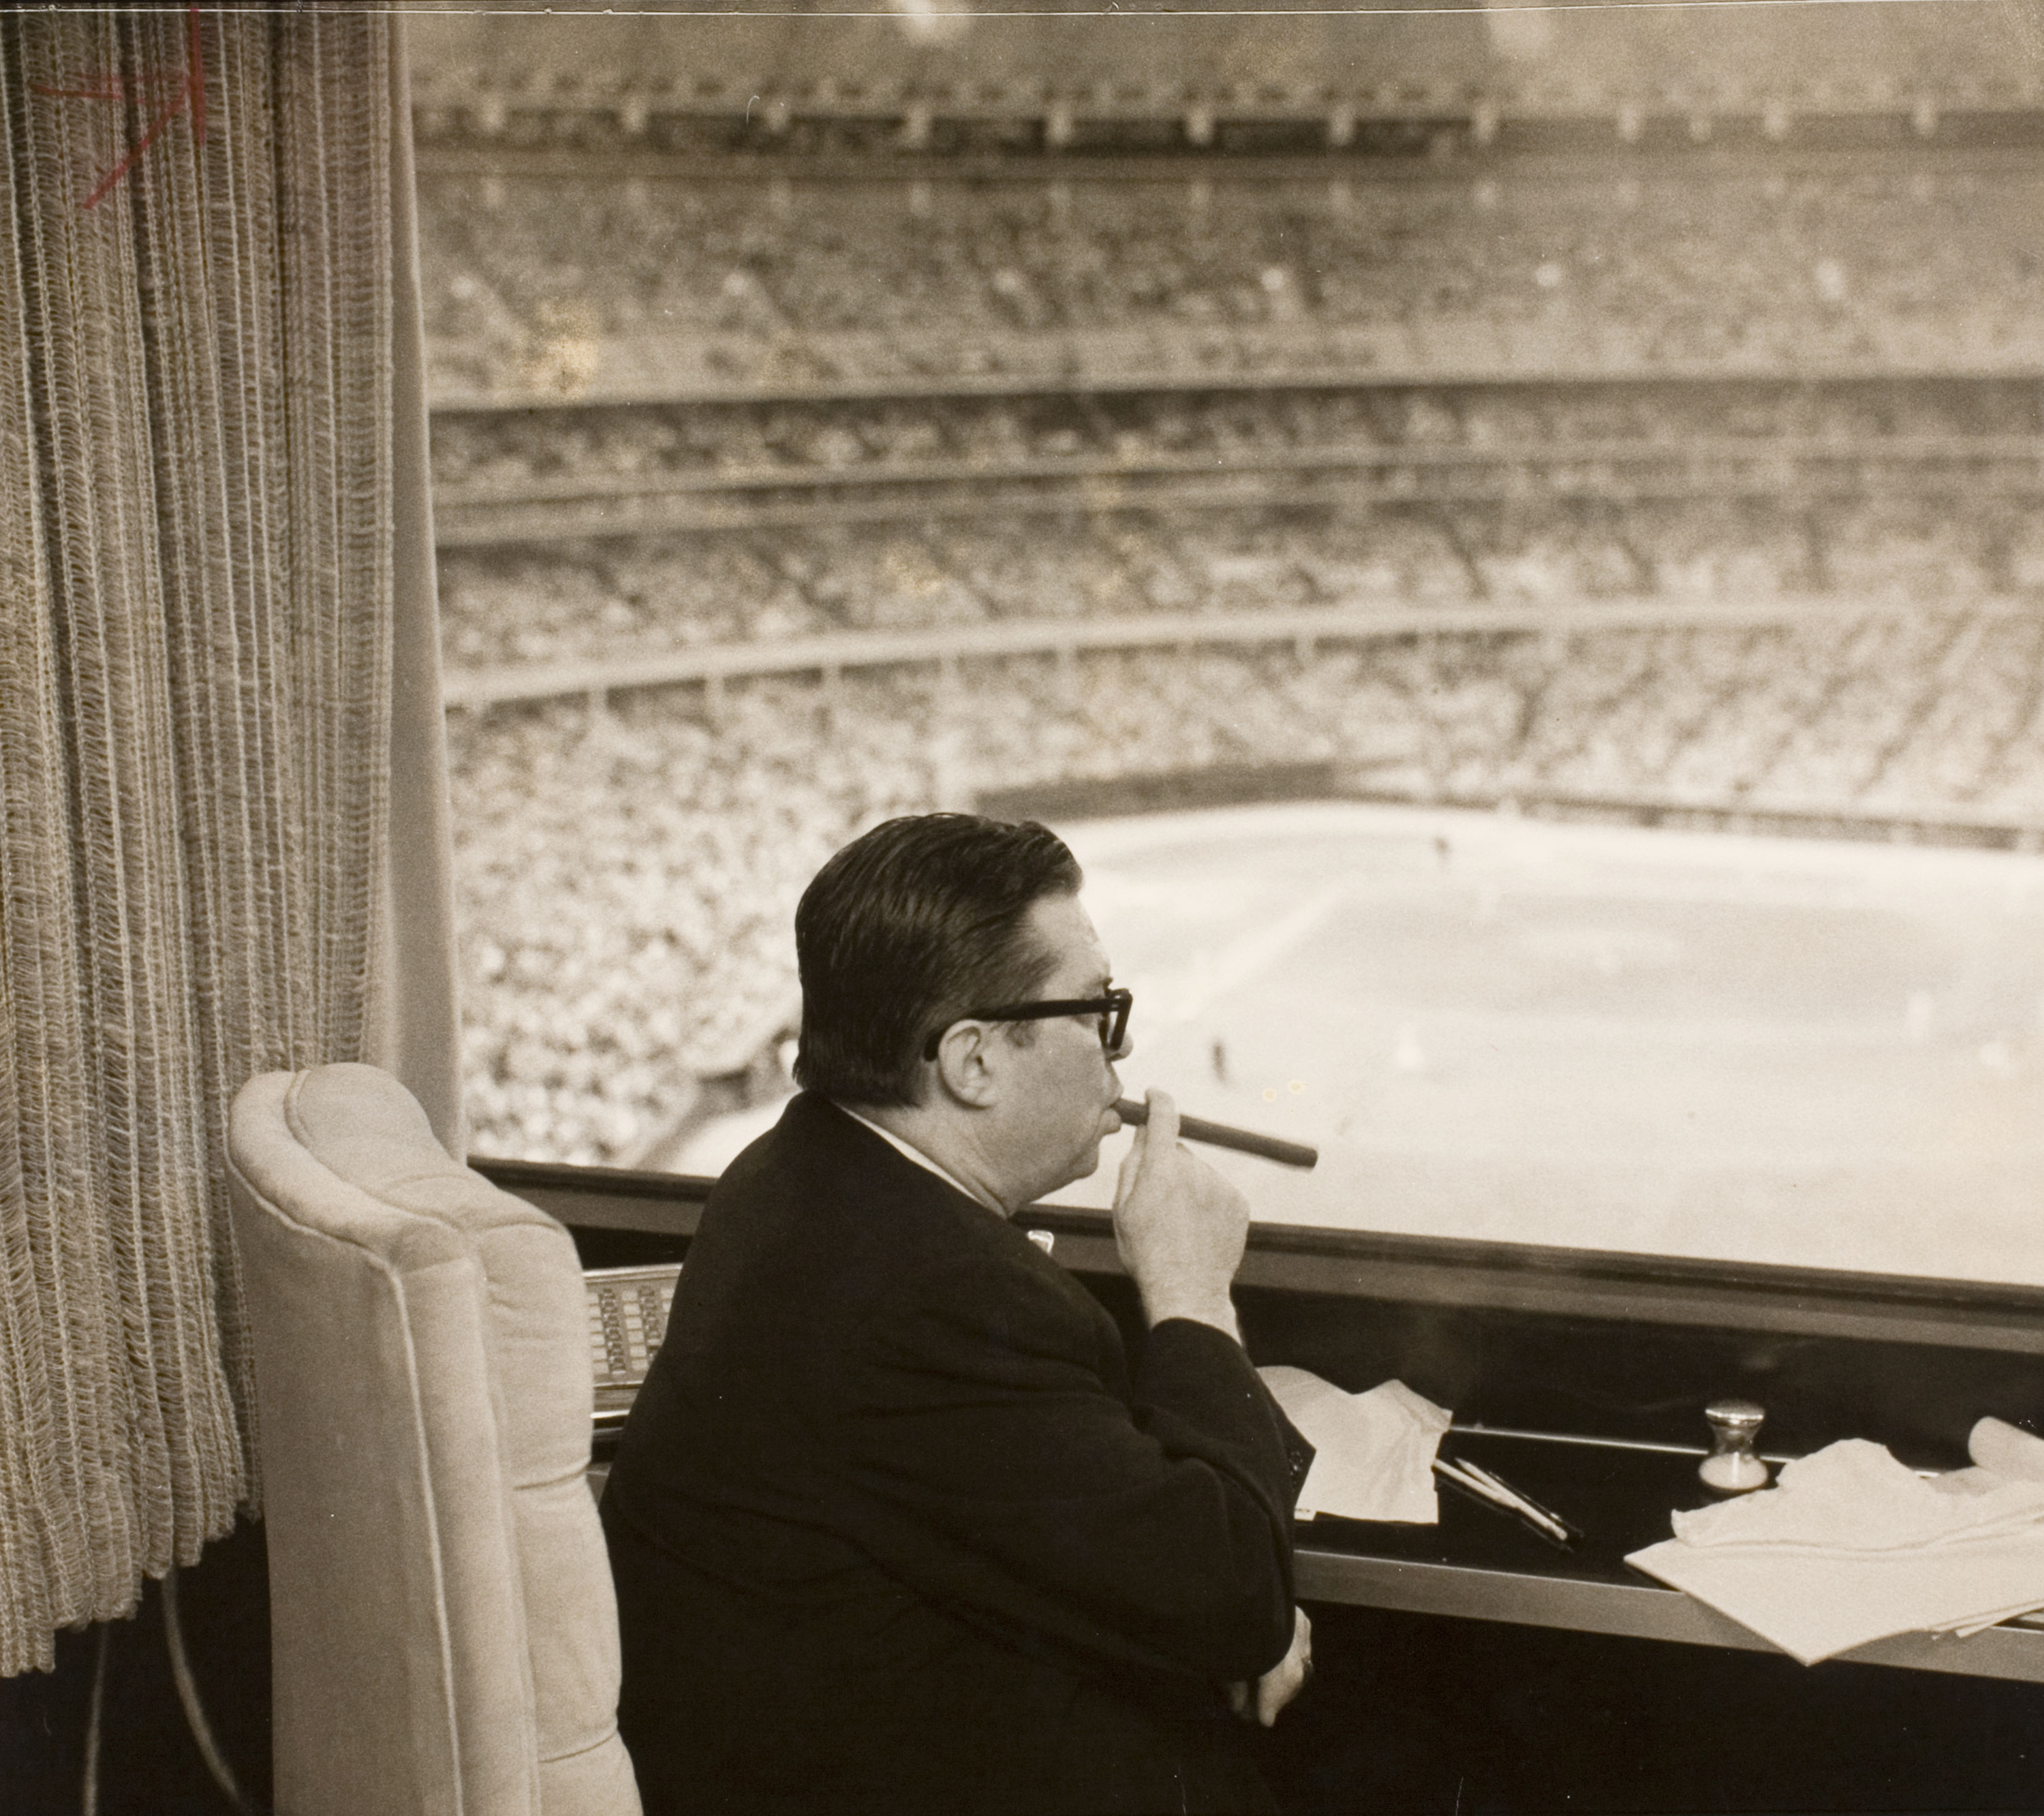 Inside roy hofheinzs lavish private penthouse suite astrodome judge roy hofheinz contemplates his astrodome empire photo dan hardy for the houston post june 13 1965 houston metropolitan research center malvernweather Images